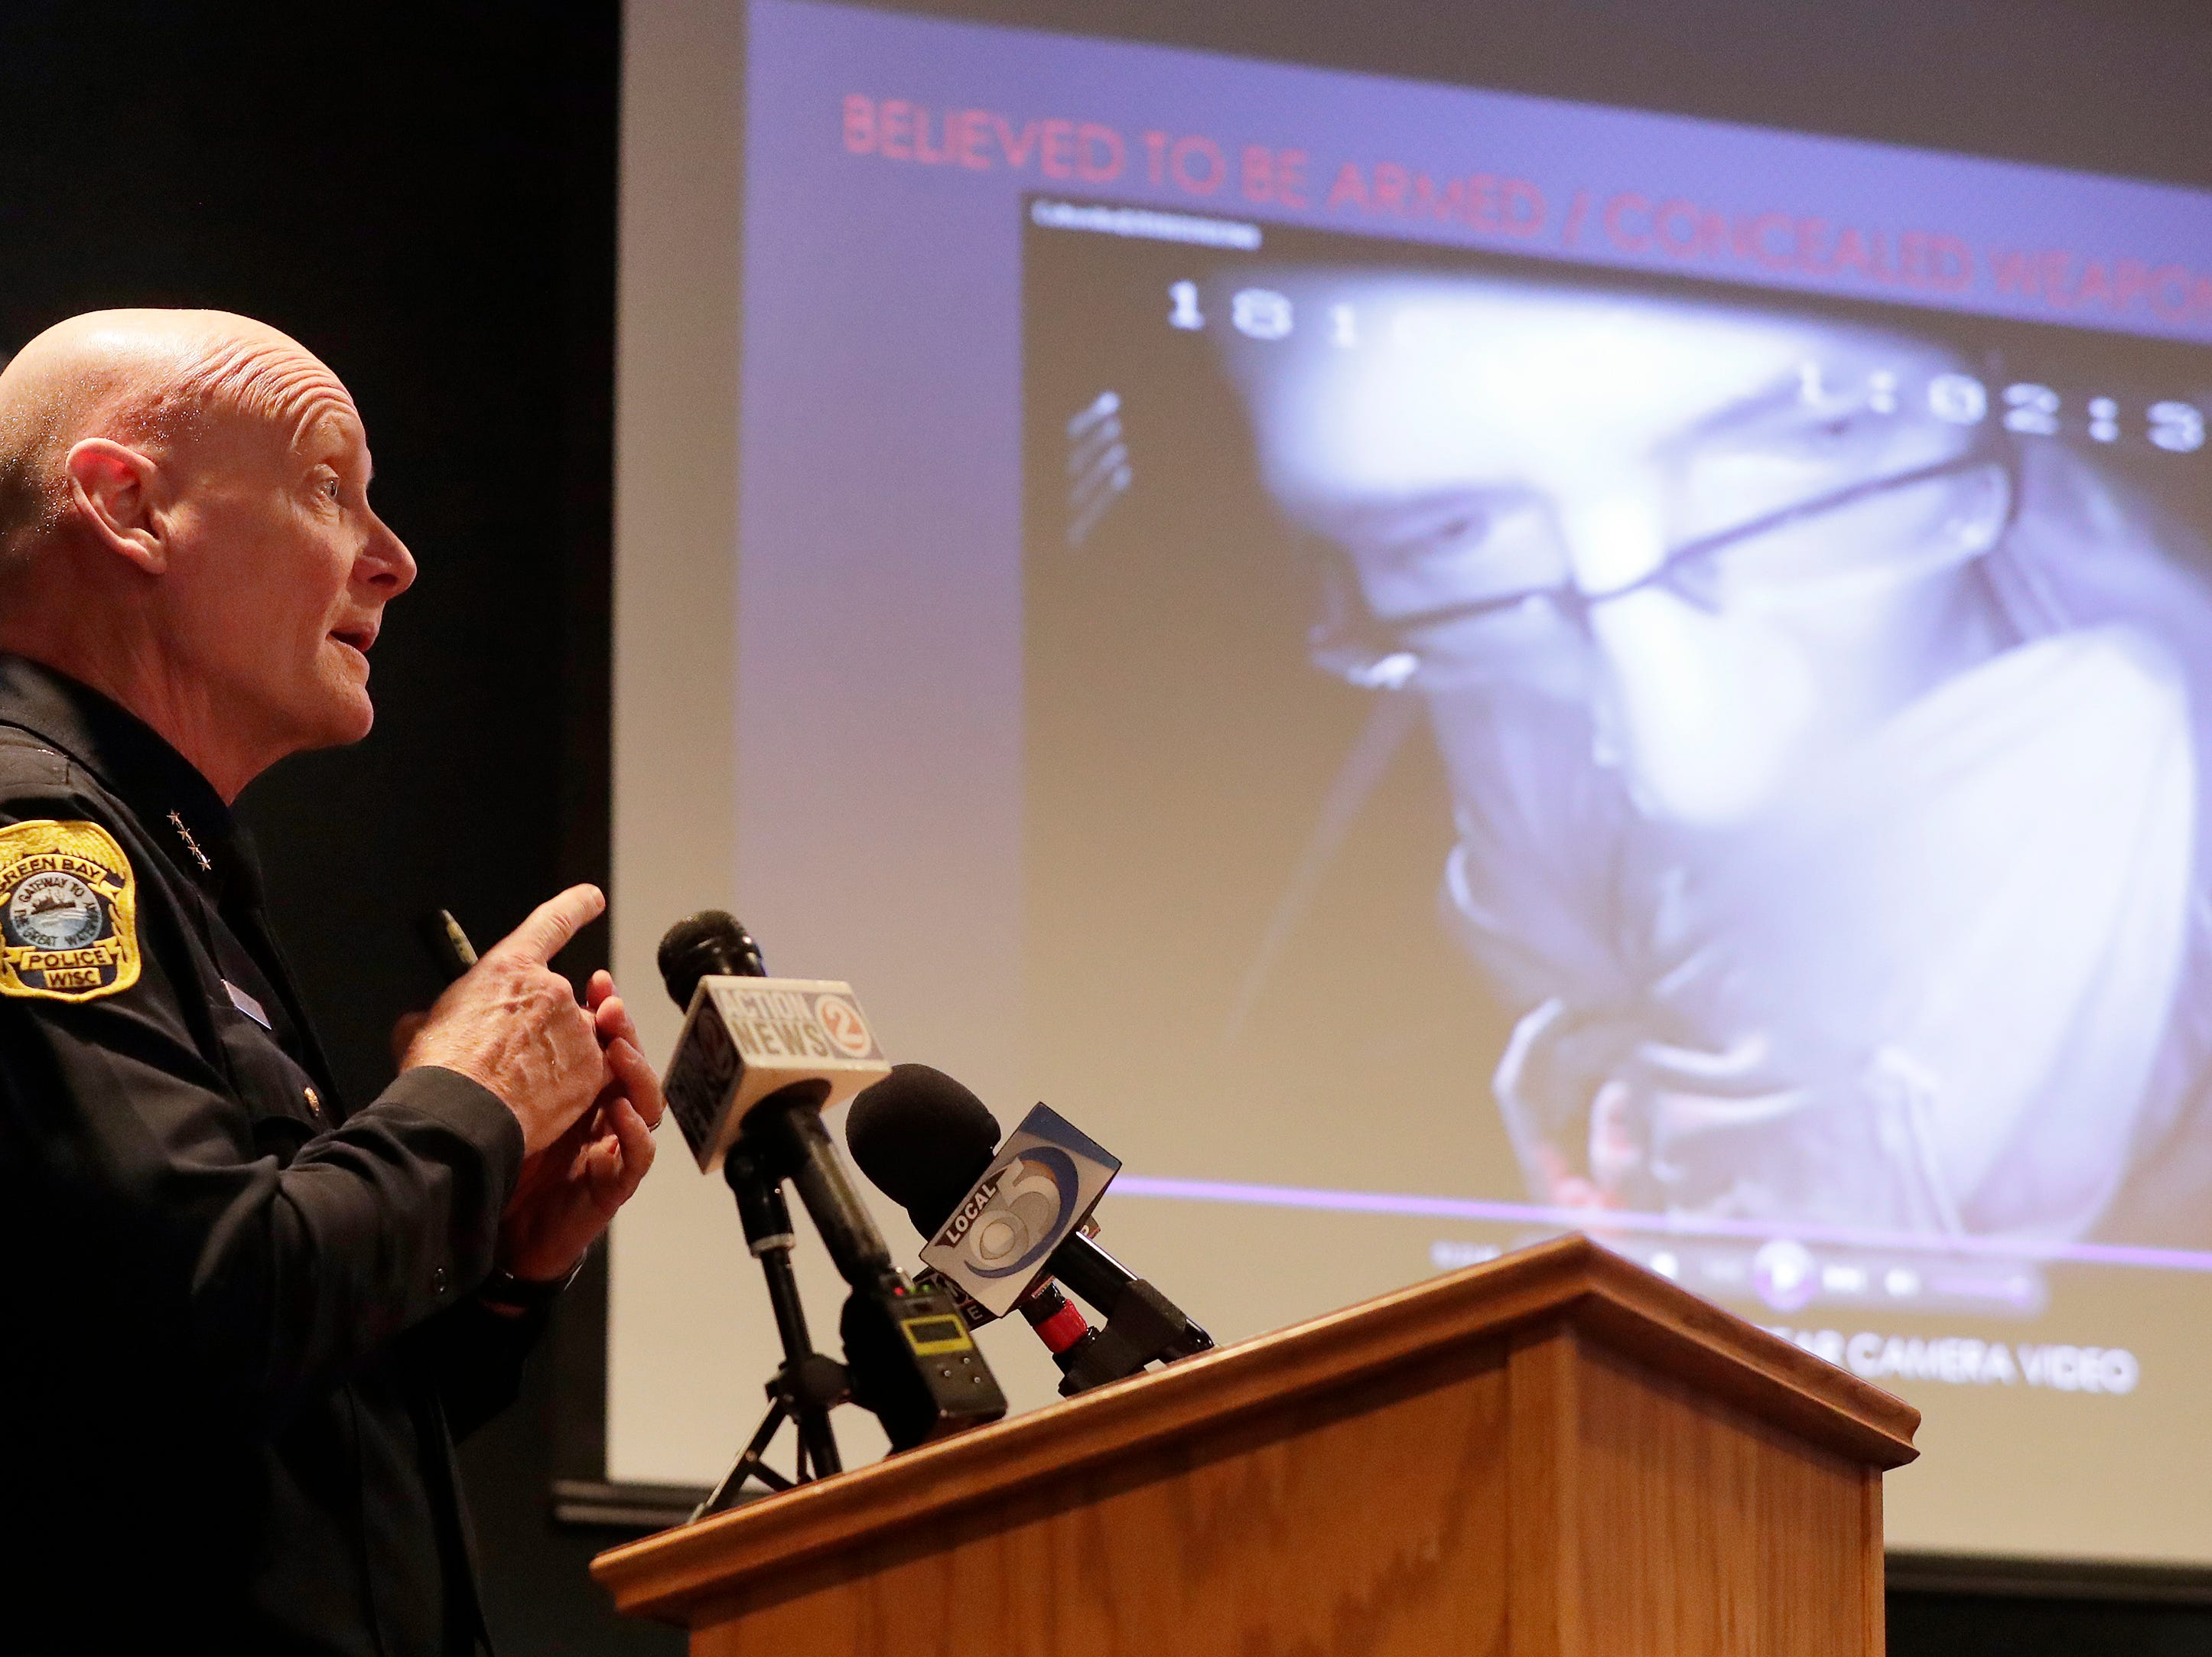 Green Bay Police Chief Andrew Smith speaks at a press conference about the fatal shooting of  Jonathon Tubby by Green Bay Police on Friday, February 1, 2019 in Green Bay, Wis.